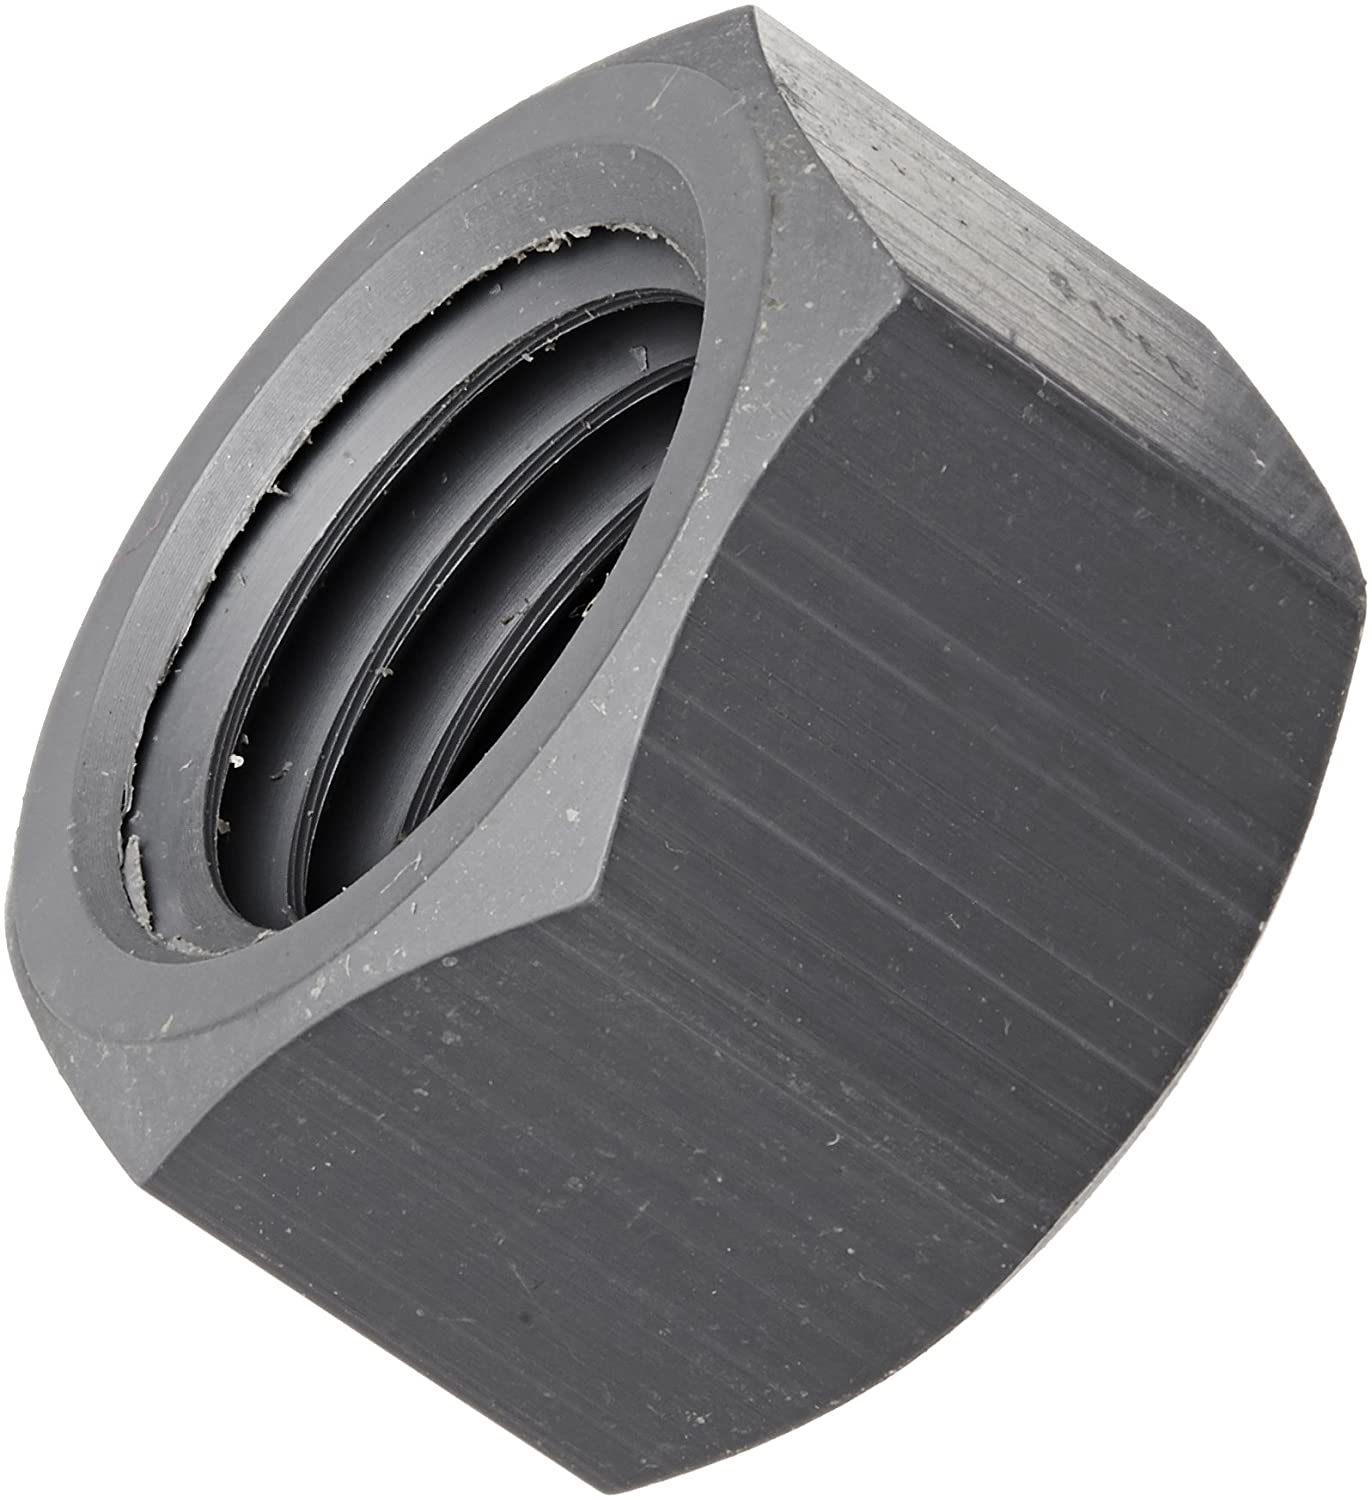 Gray 7//32 Thick 1//4-20 Thread Size 7//16 Width Across Flats 7//32 Thick Pack of 25 7//16 Width Across Flats Small Parts 1//4-20 Thread Size Pack of 25 PVC Hex Nut